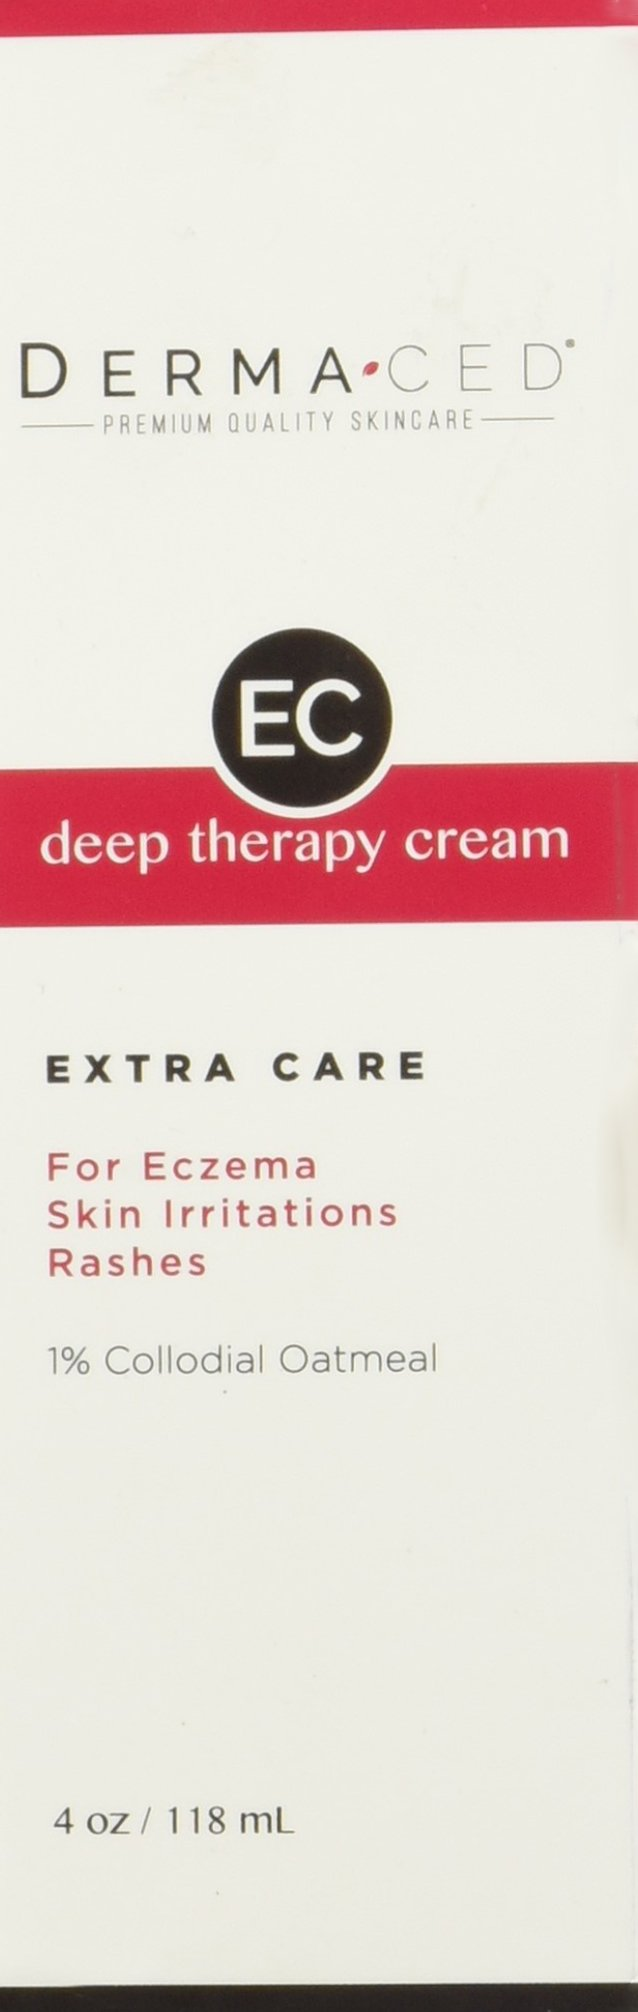 Deep Therapy Cream EC for Fast Eczema and Psoriasis Support | Unscented | Colloidal Oatmeal (1%), Jojoba Oil, Licorice, Beeswax & More